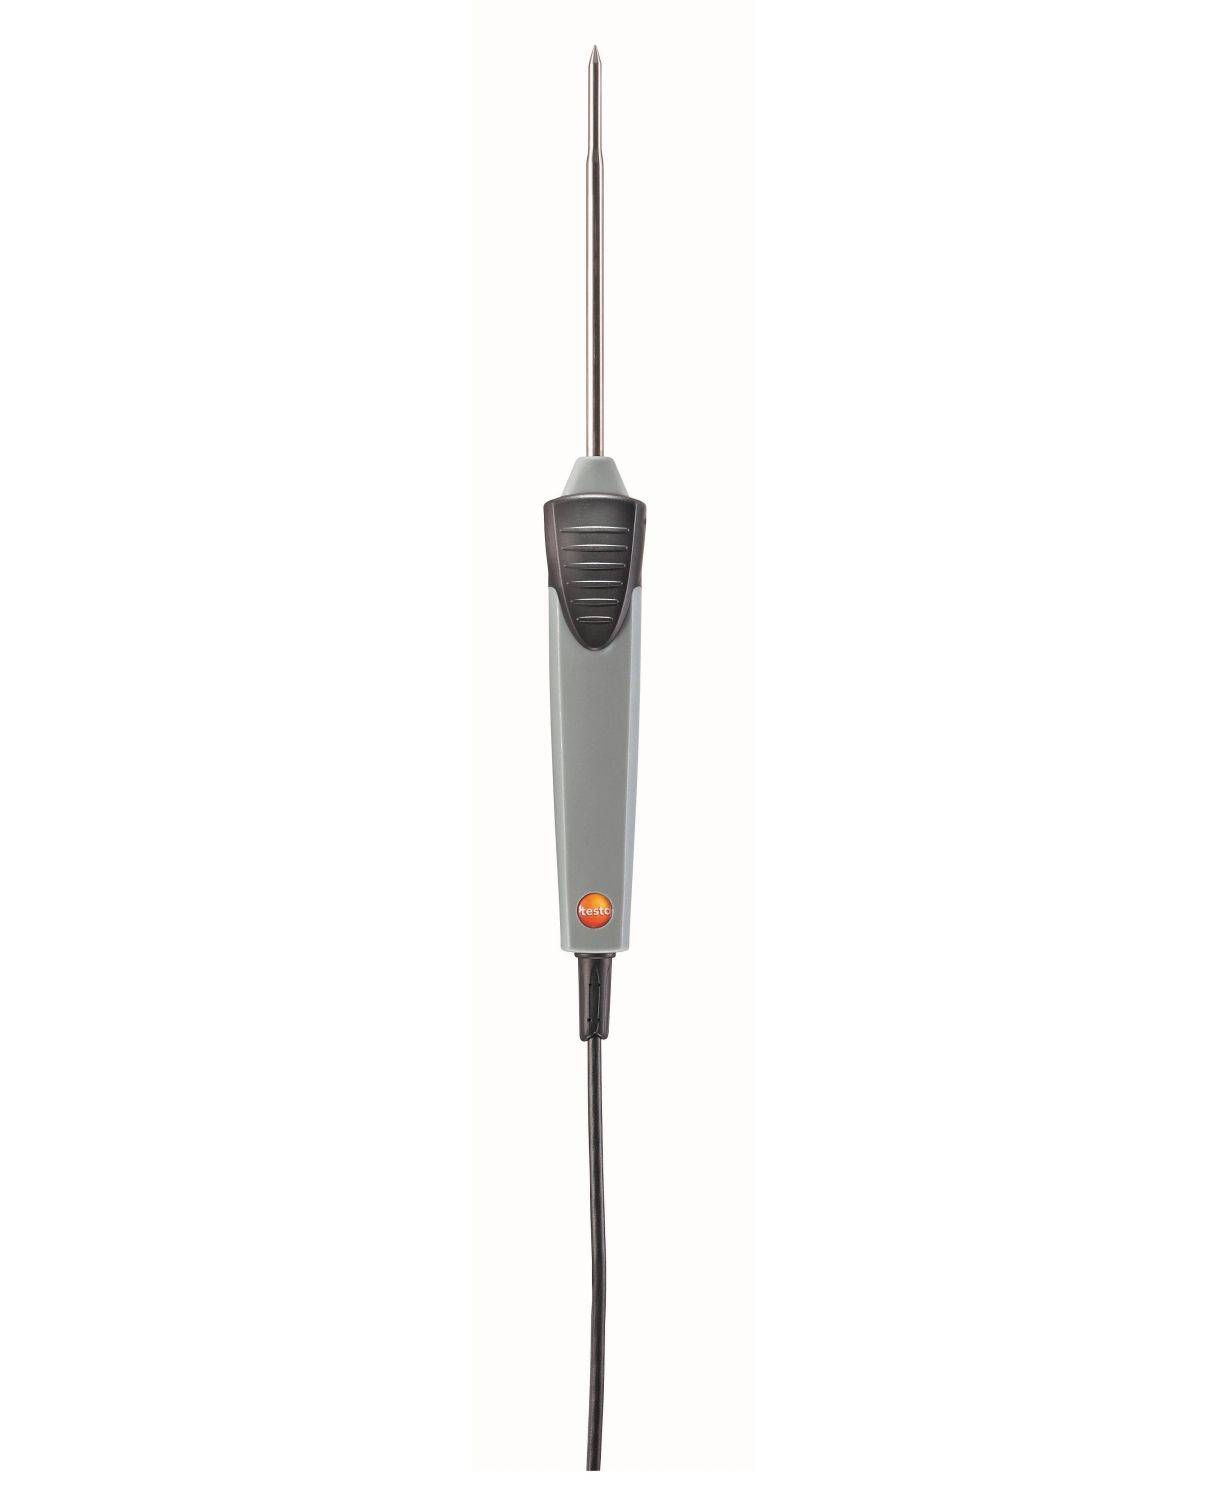 Waterproof immersion/penetration probe with NTC temperature sensor